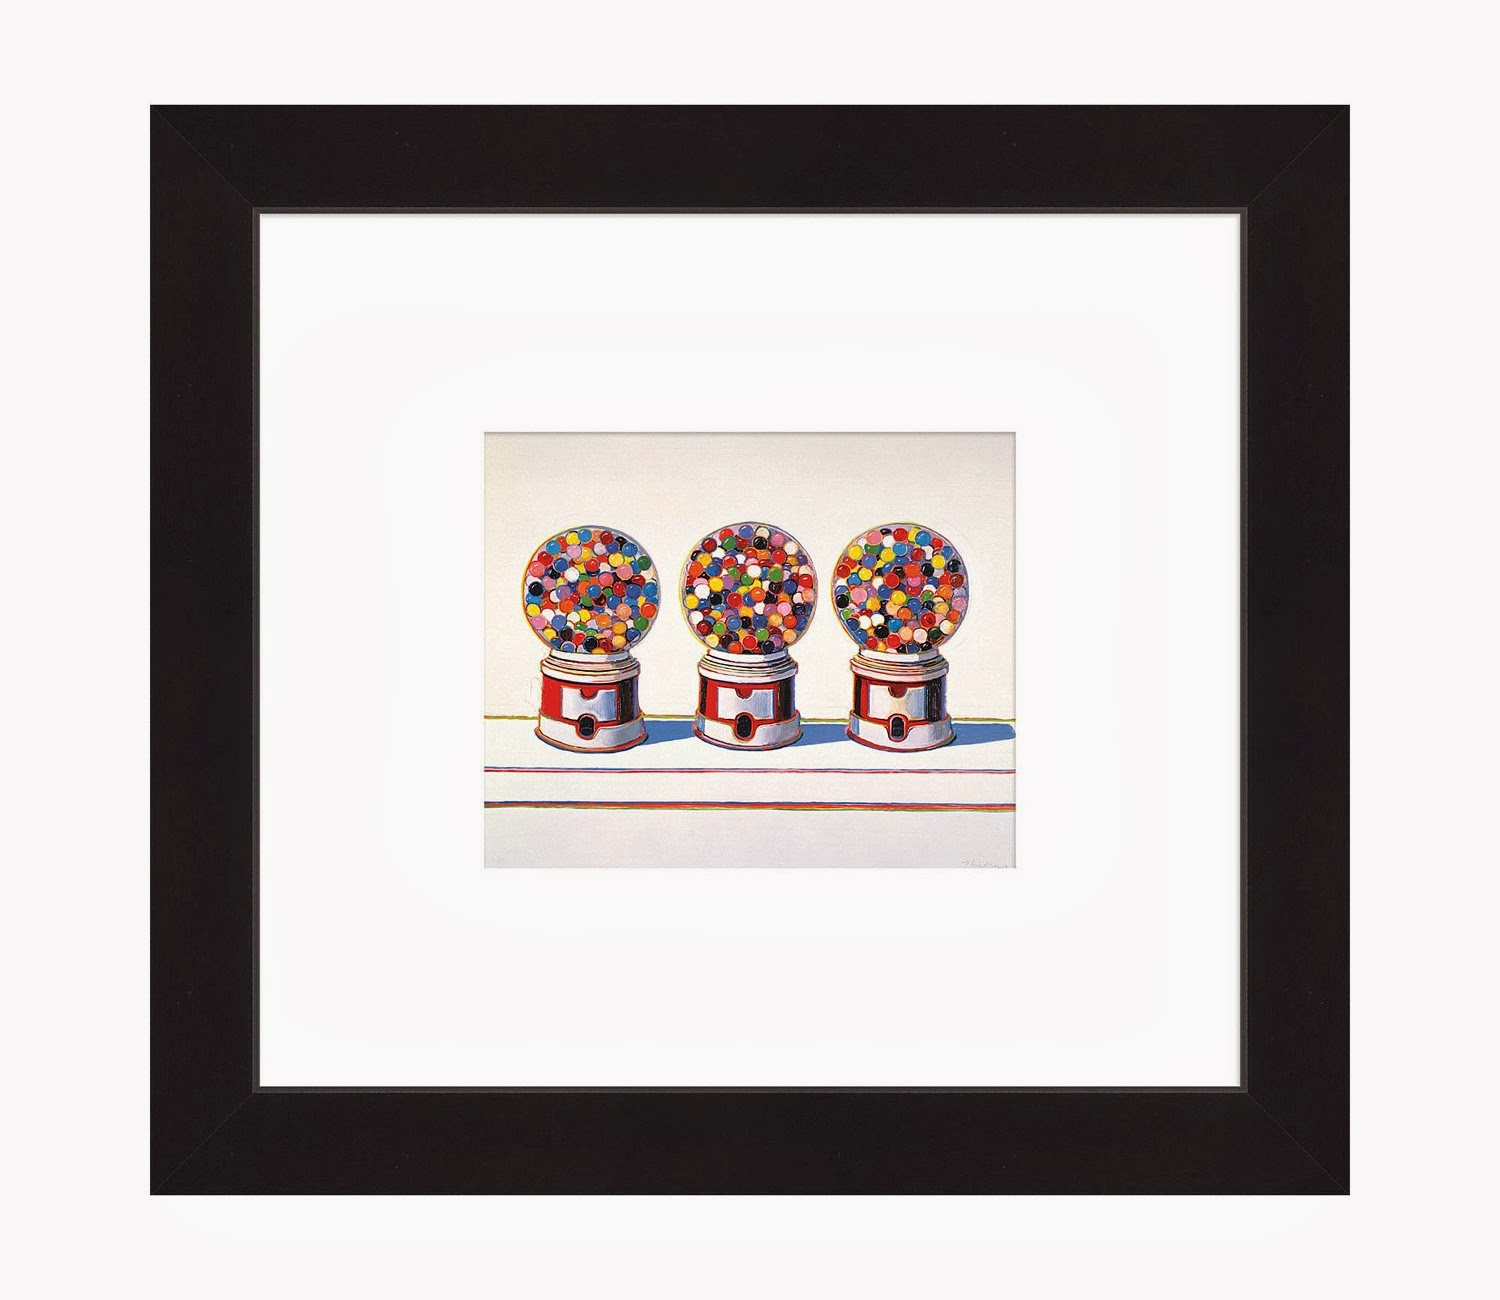 https://www.touchofmodern.com/sales/20th-century-masters/wayne-thiebaud-three-machines-1963?share_invite_token=WQ3PD6V0